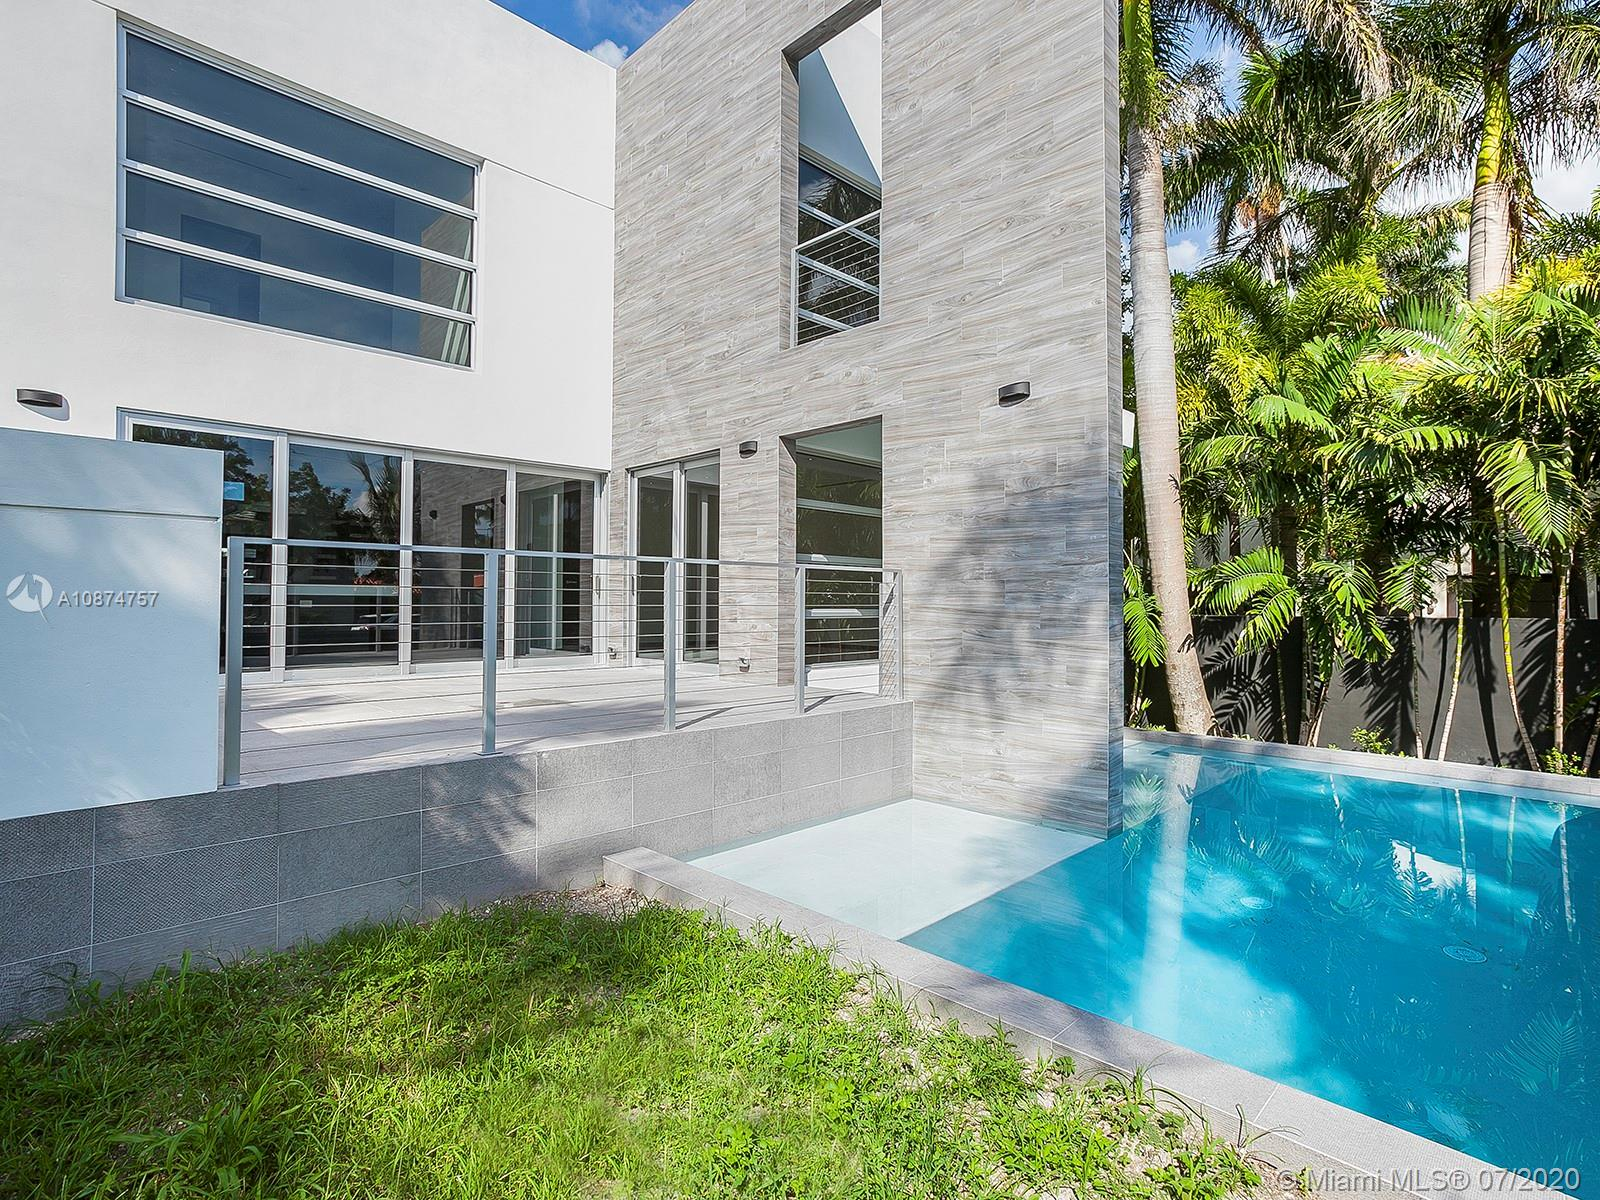 Palm Island - 257 Palm Ave, Miami Beach, FL 33139